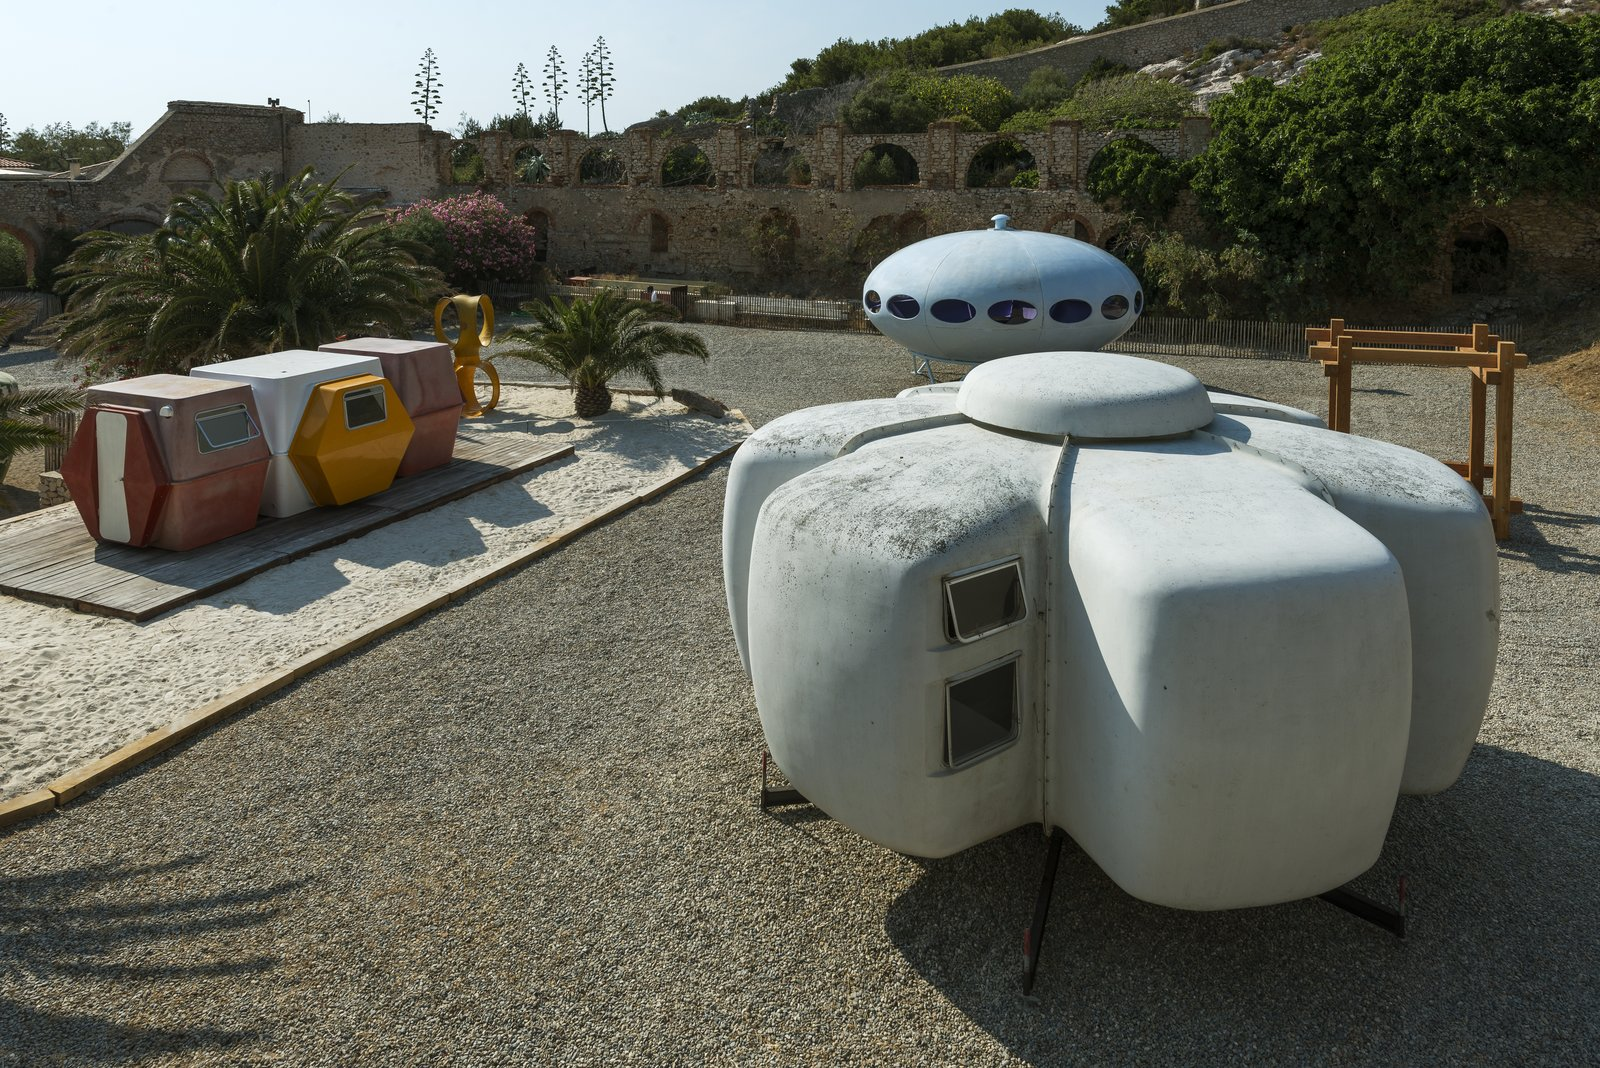 Photo 2 of 10 in At Utopie Plastic, Futuristic Plastic Homes Make an Appearance at a 19th-Century Metal Factory